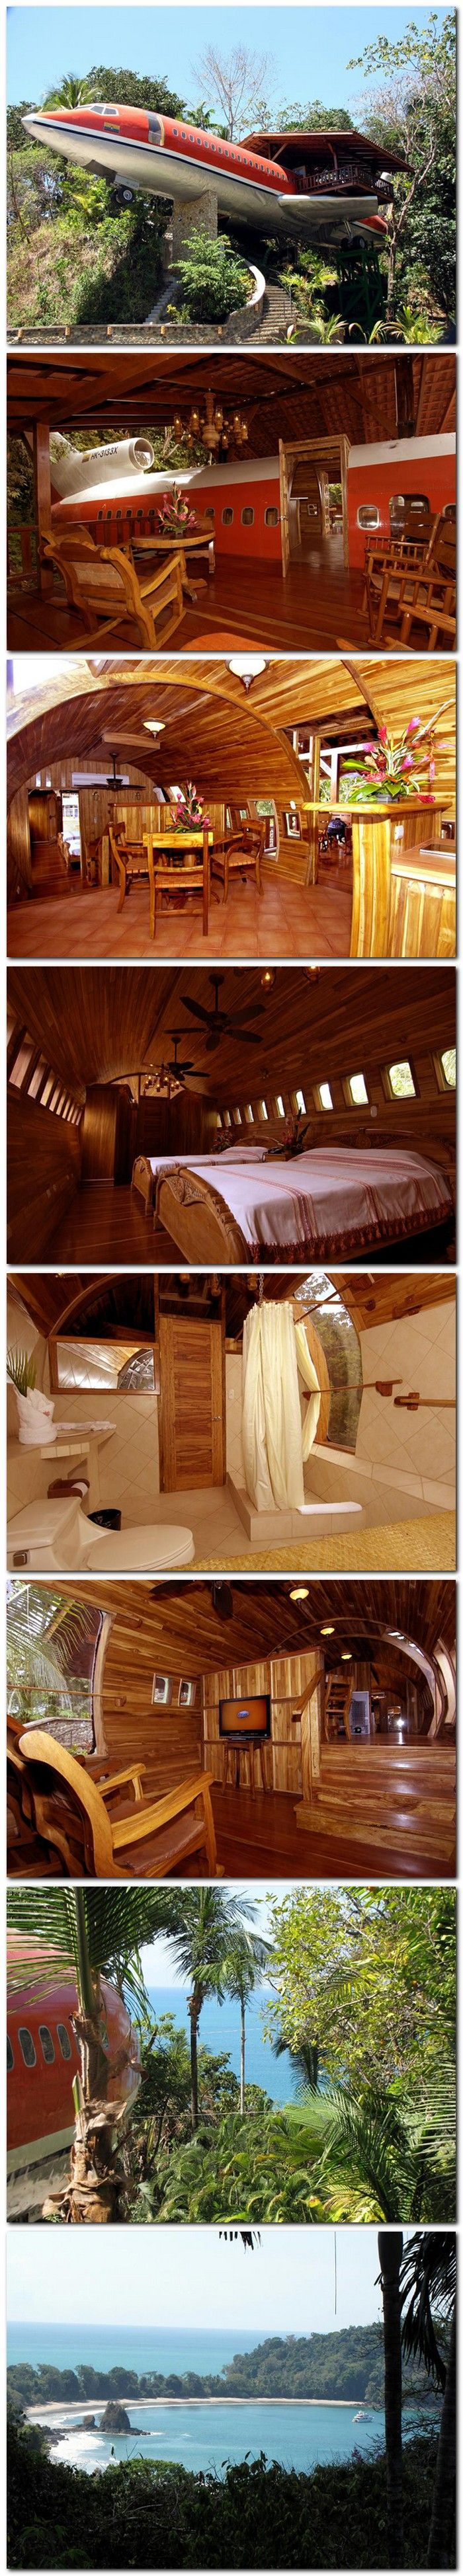 Decommissioned Boeing 727 Airplane Hotel Room in Costa Rica | Hotel Liquidators liquidates, sells, removes, ships, and installs furniture to make your job easier for you! Call Hotel Liquidators at (248) 918-4747 or visit our website www.hotelliquidator.net for more information!